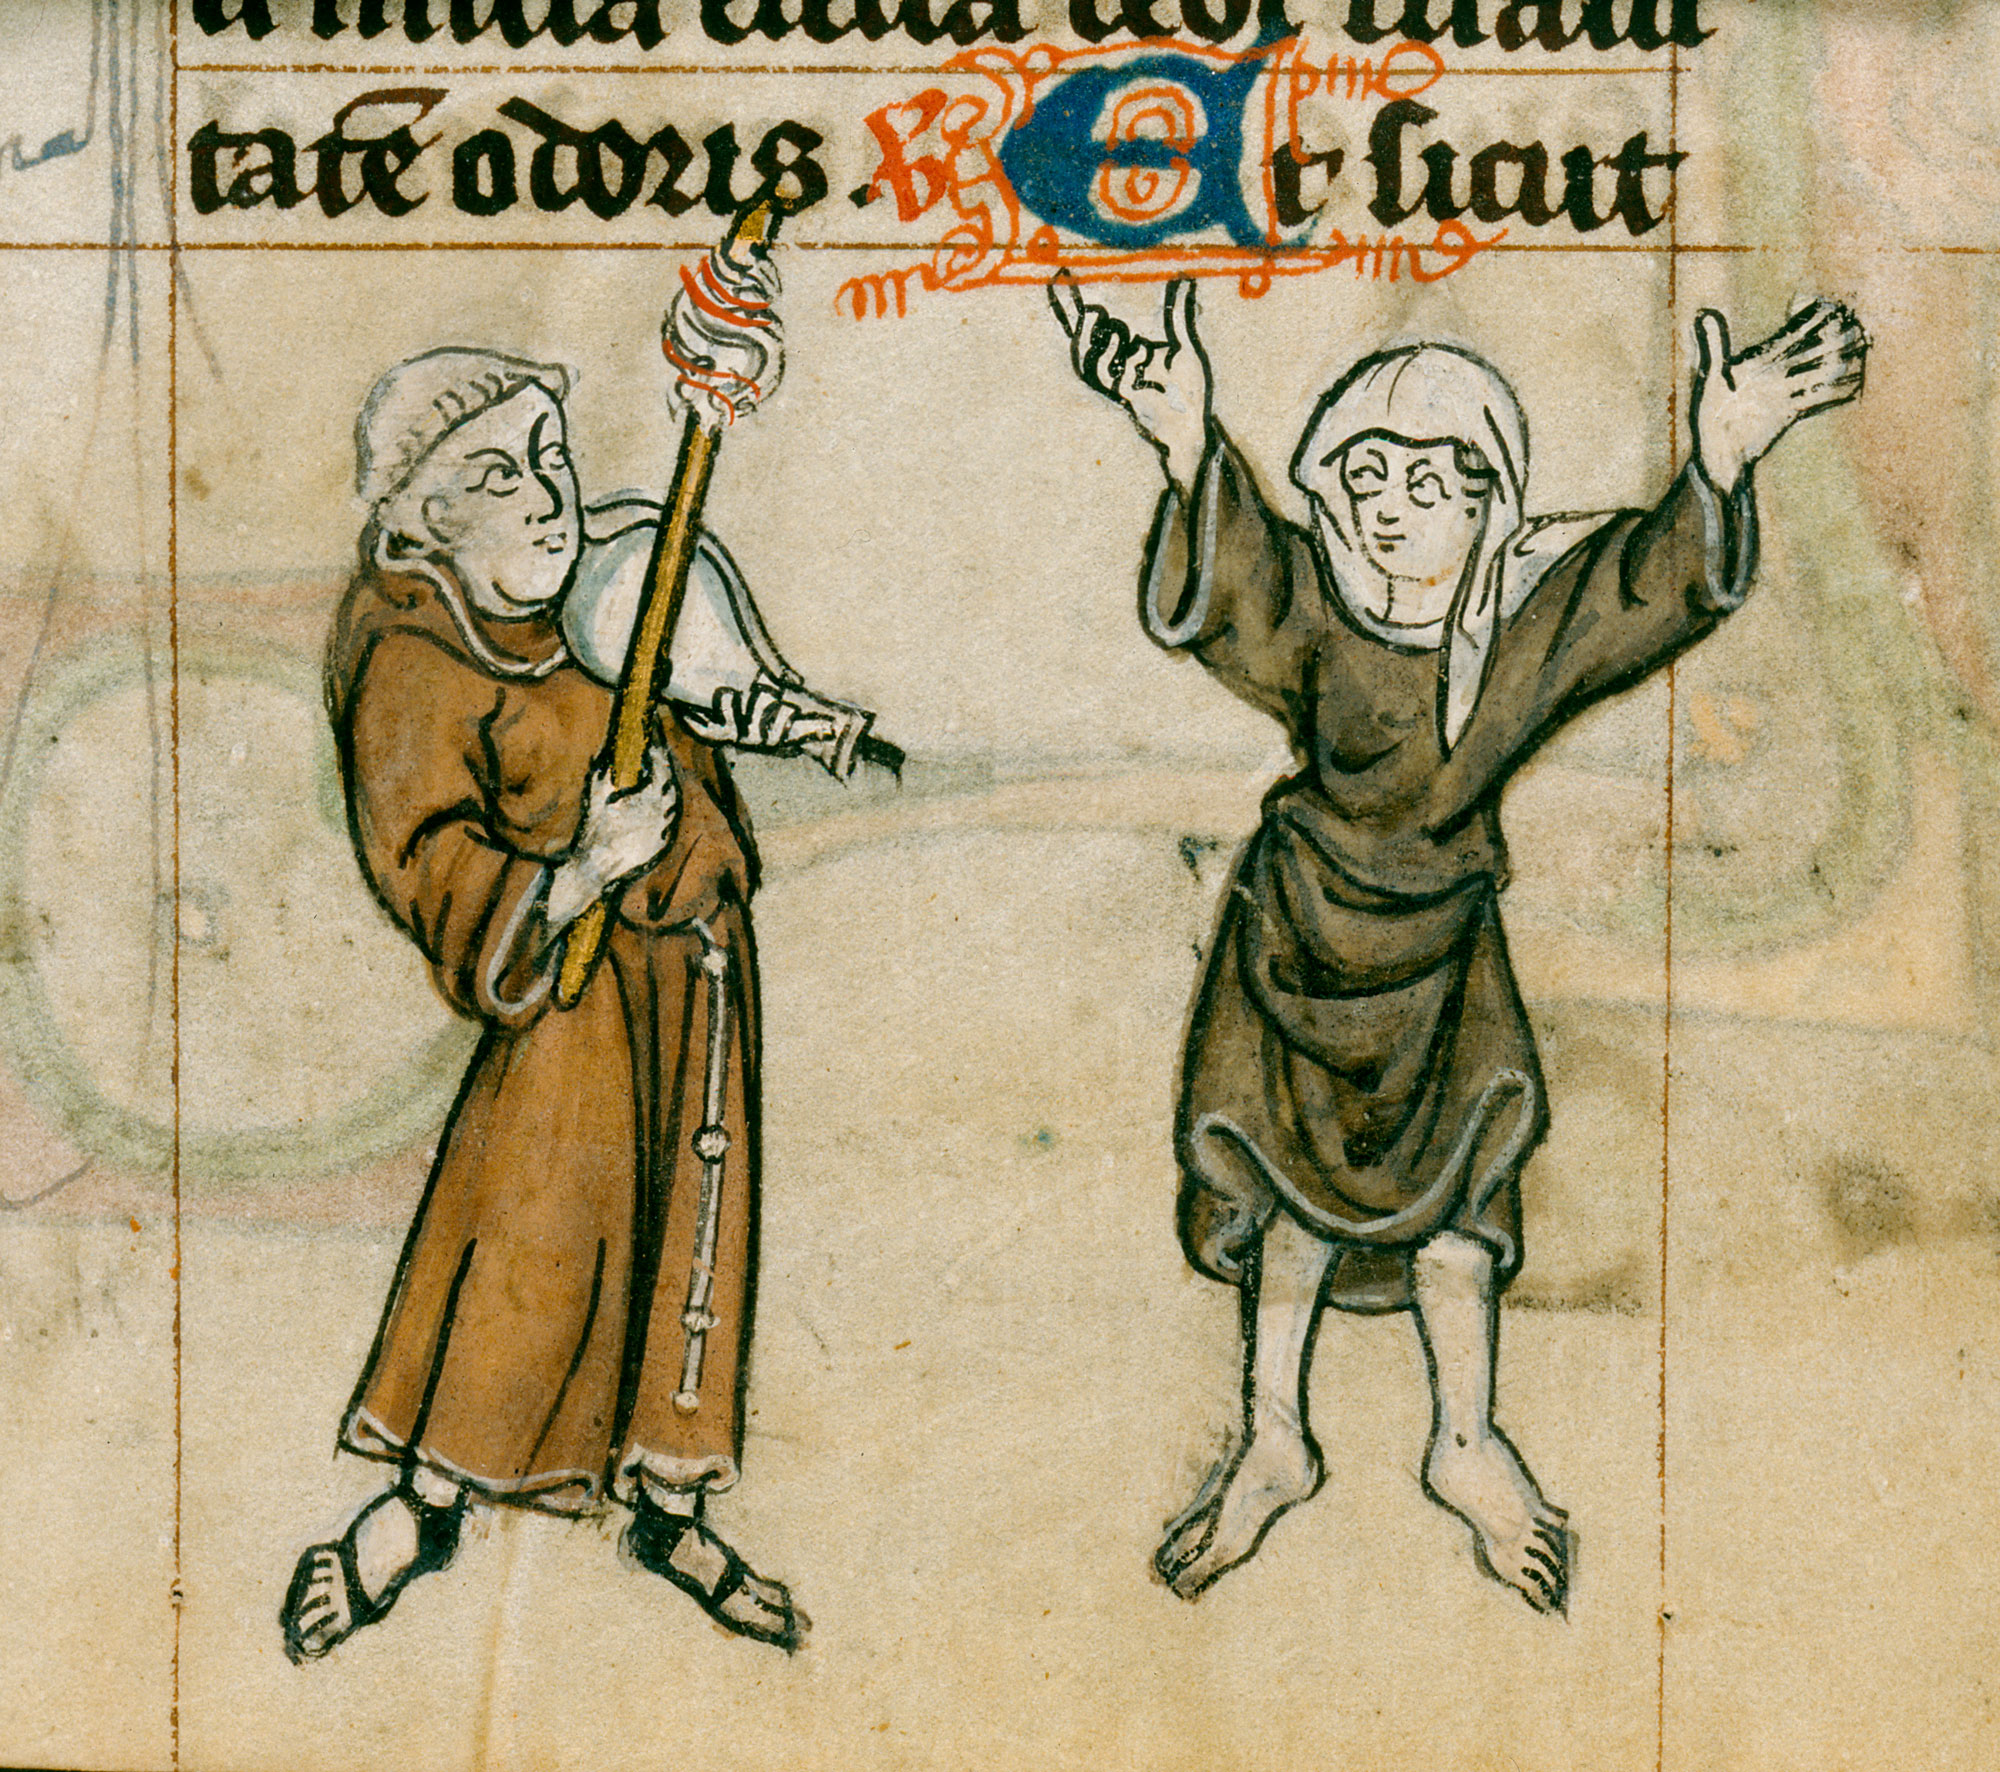 Marginal image of a friar with a musical instrument and a nun dancing